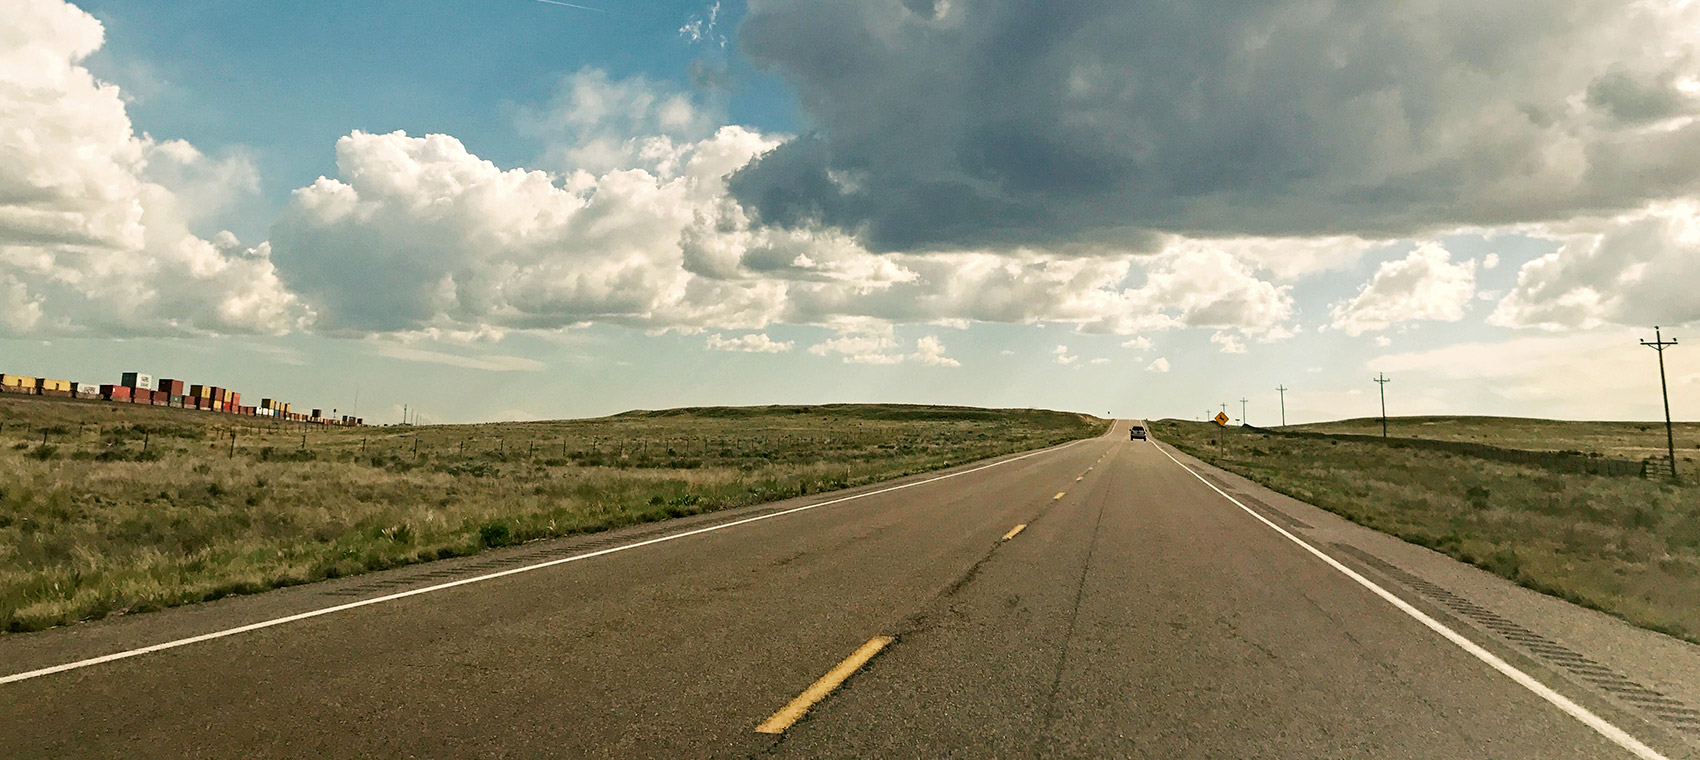 THE SHORT HISTORY OF A LONG ROAD